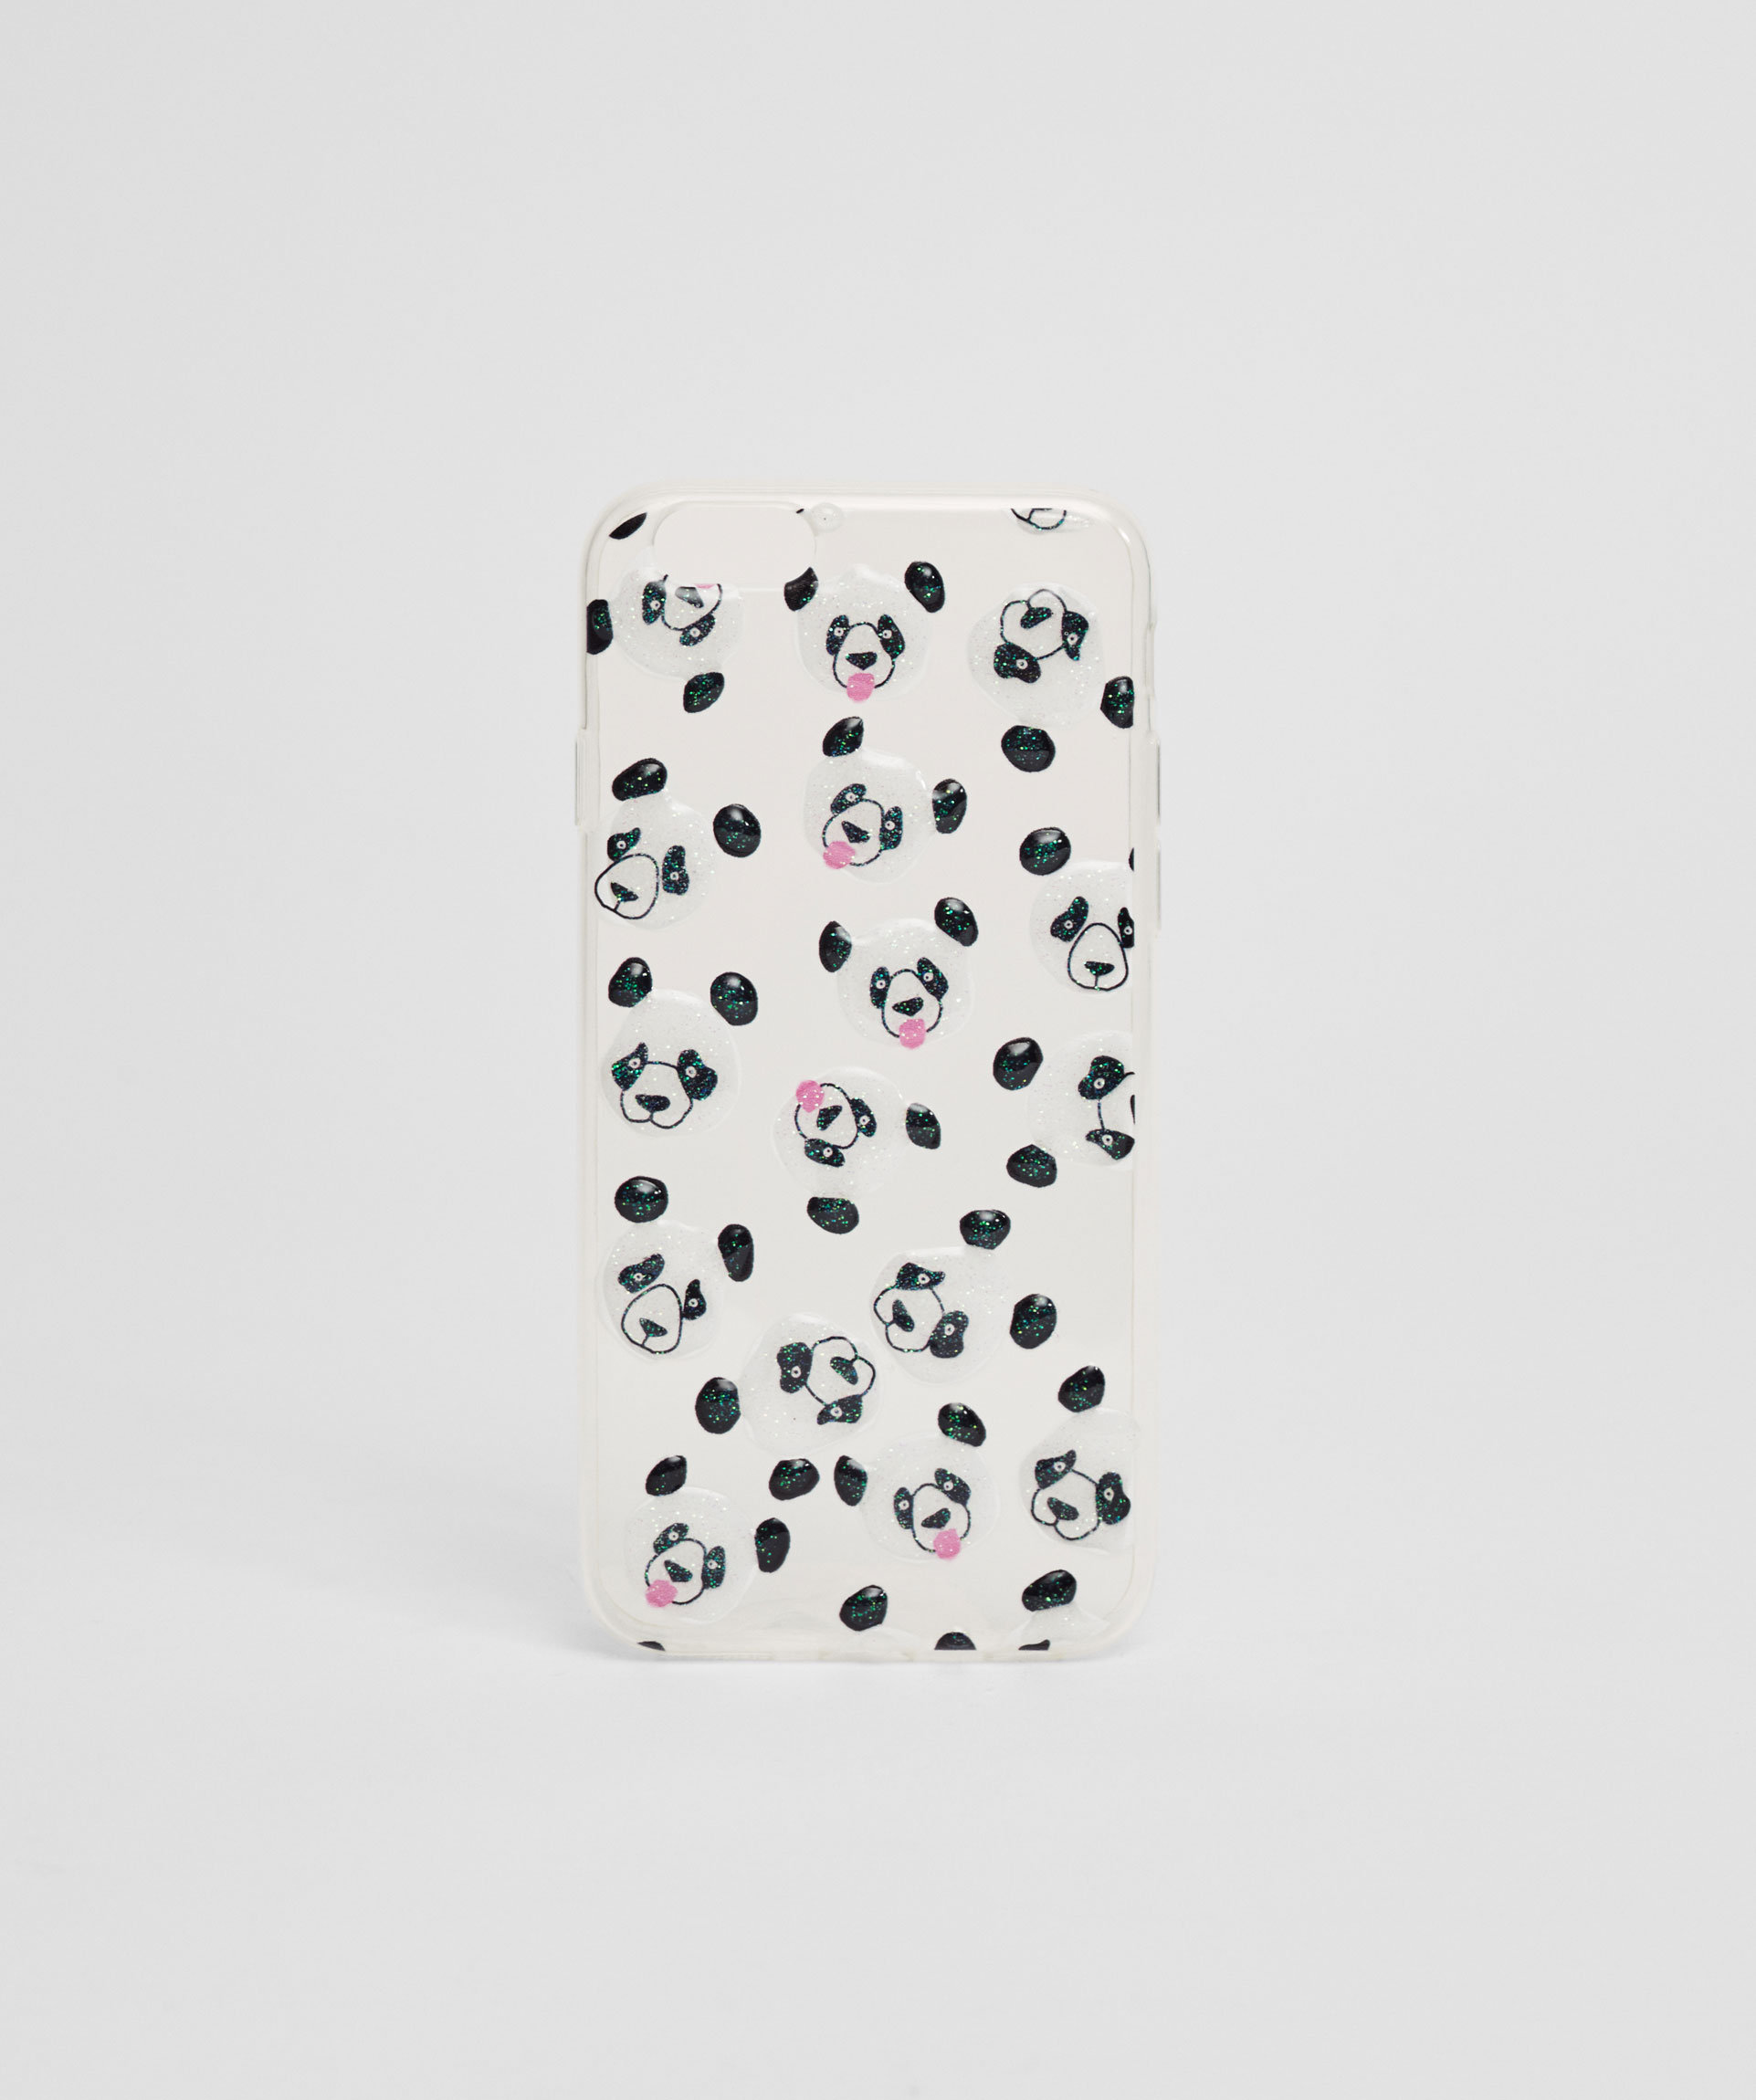 Panda mobile phone cover